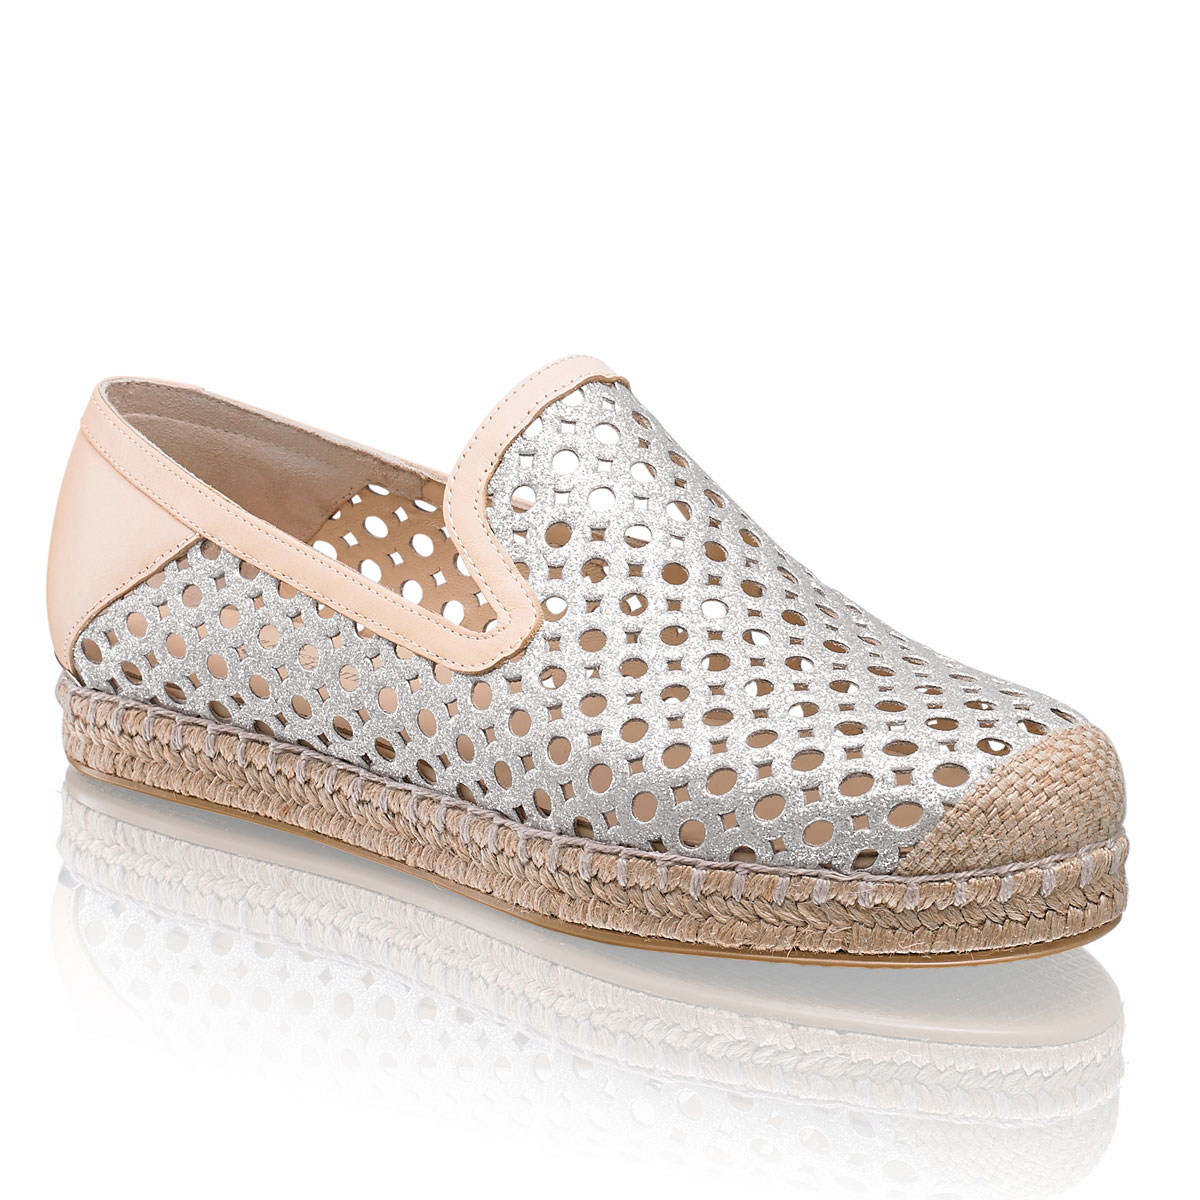 RUSSELL & BROMLEY - COUNTY PERFORATED ESPADRILLE £195